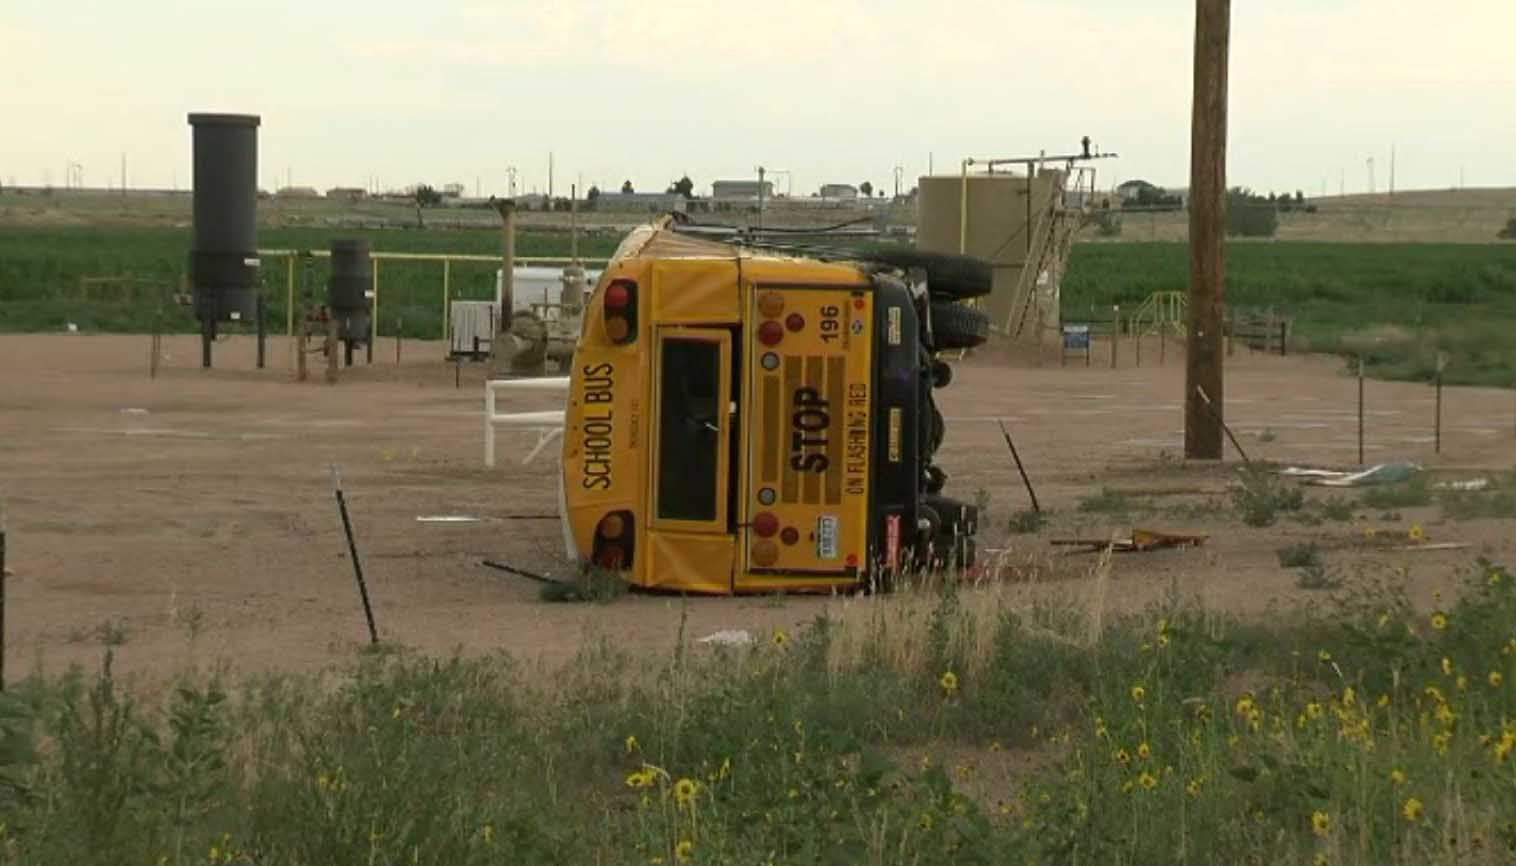 Authorities say multiple people were injured when a school bus carrying 35 high school students crashed and tipped over on a rural road northeast of Denver. (Source: KMGH via CNN)